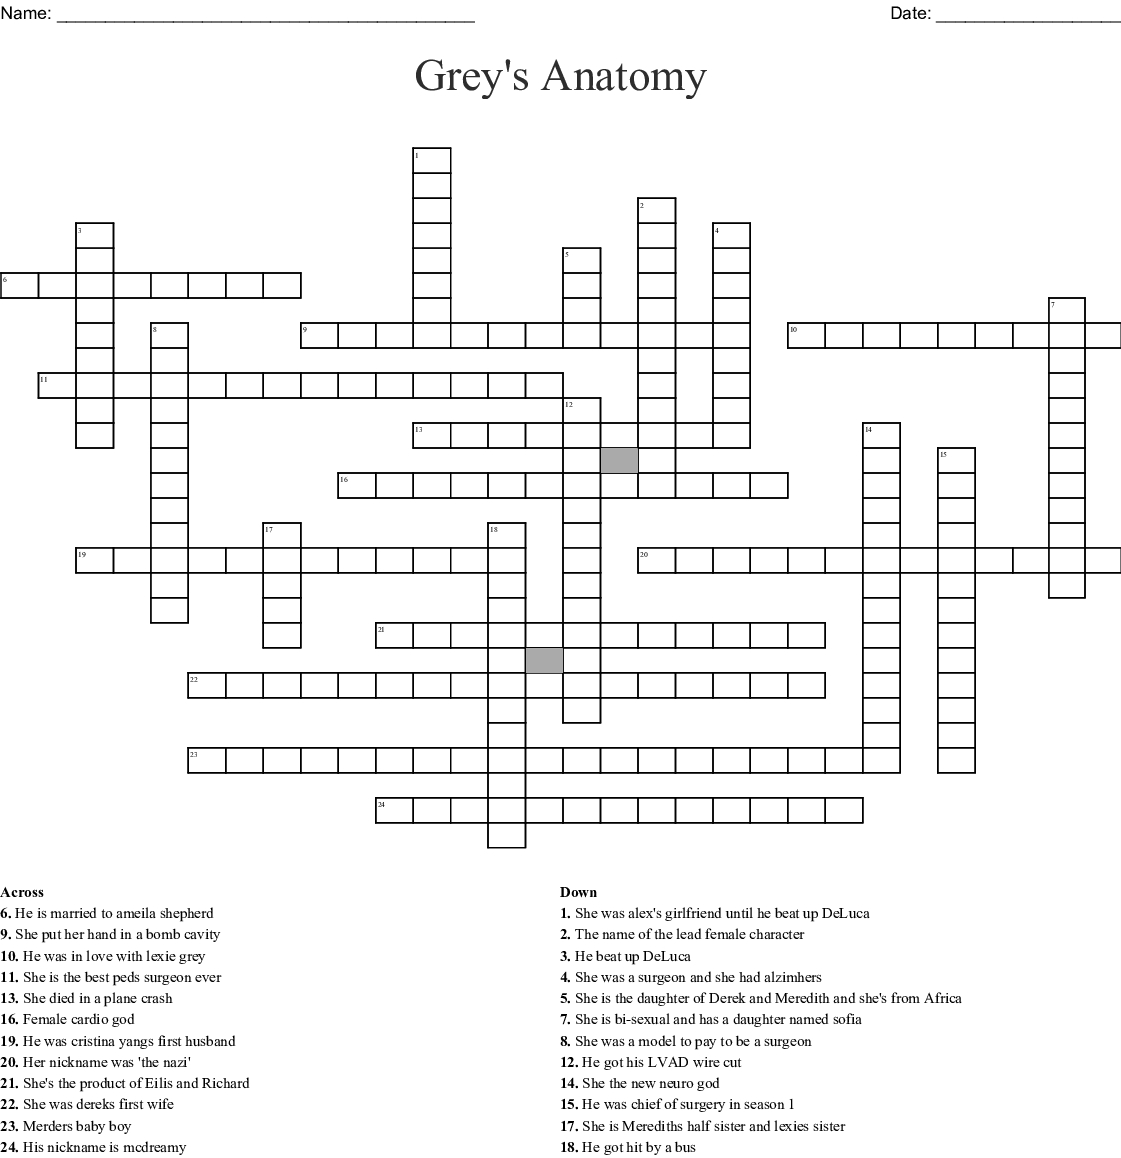 Grey's Anatomy Crossword - Wordmint - Printable Grey's Anatomy Crossword Puzzles